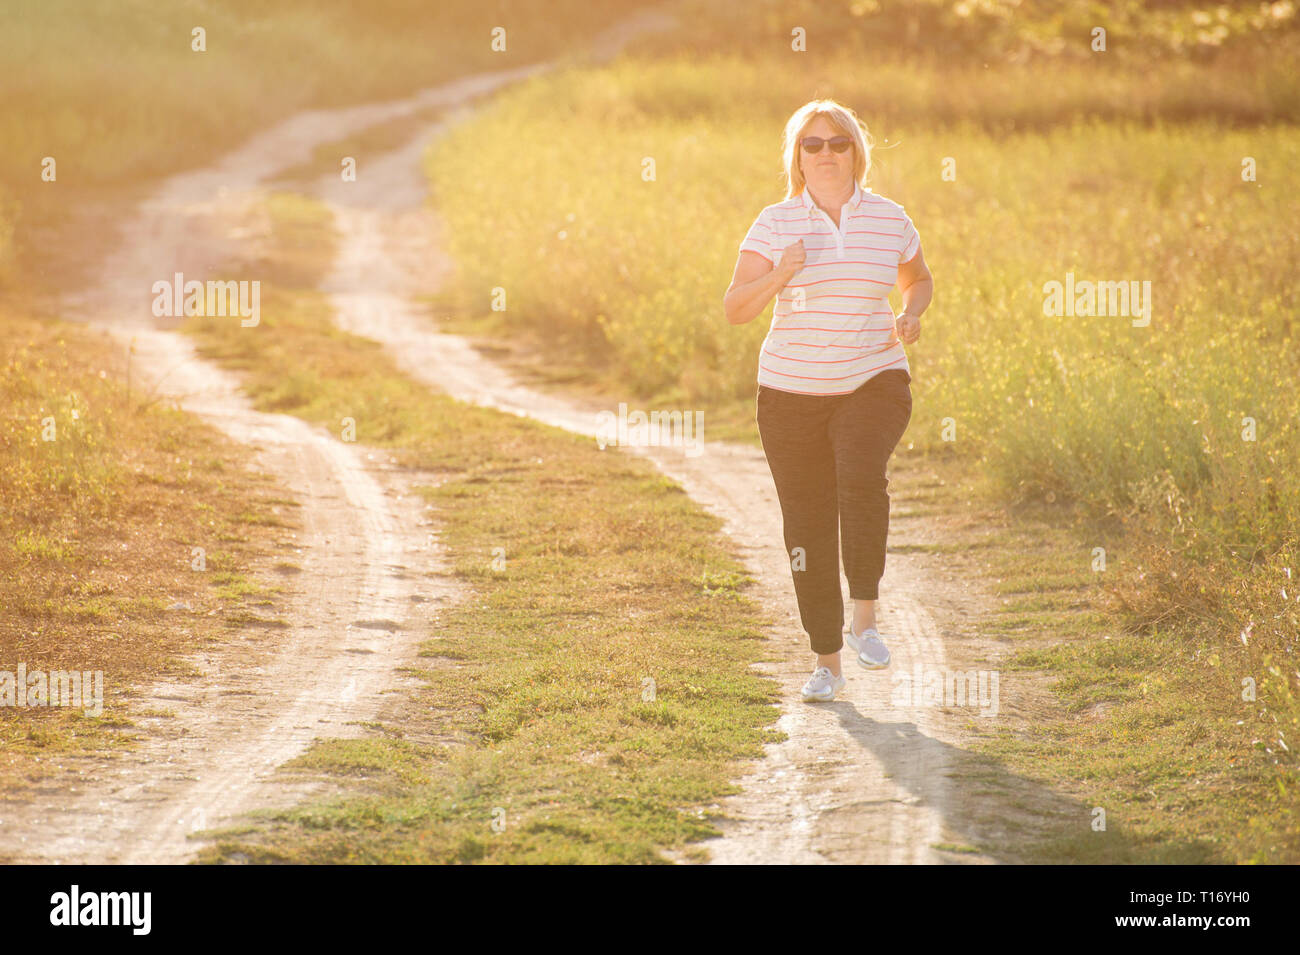 active fat adult woman running along track outdoor leisure workout - Stock Image